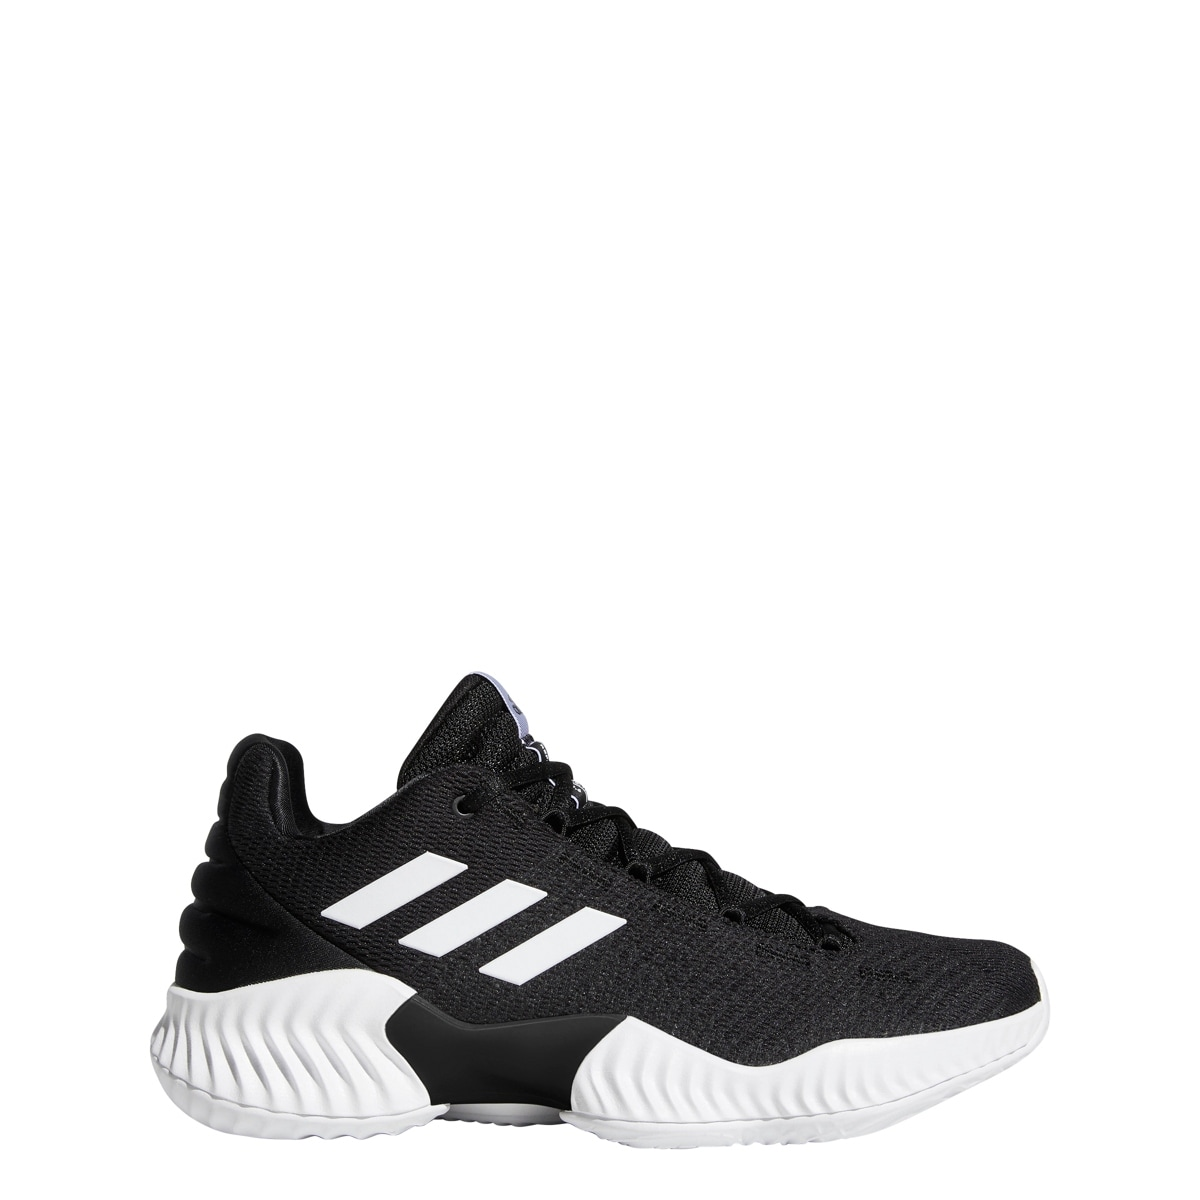 finest selection a15a5 0e267 Adidas Originals Men s Pro Bounce 2018 Low Basketball Shoe